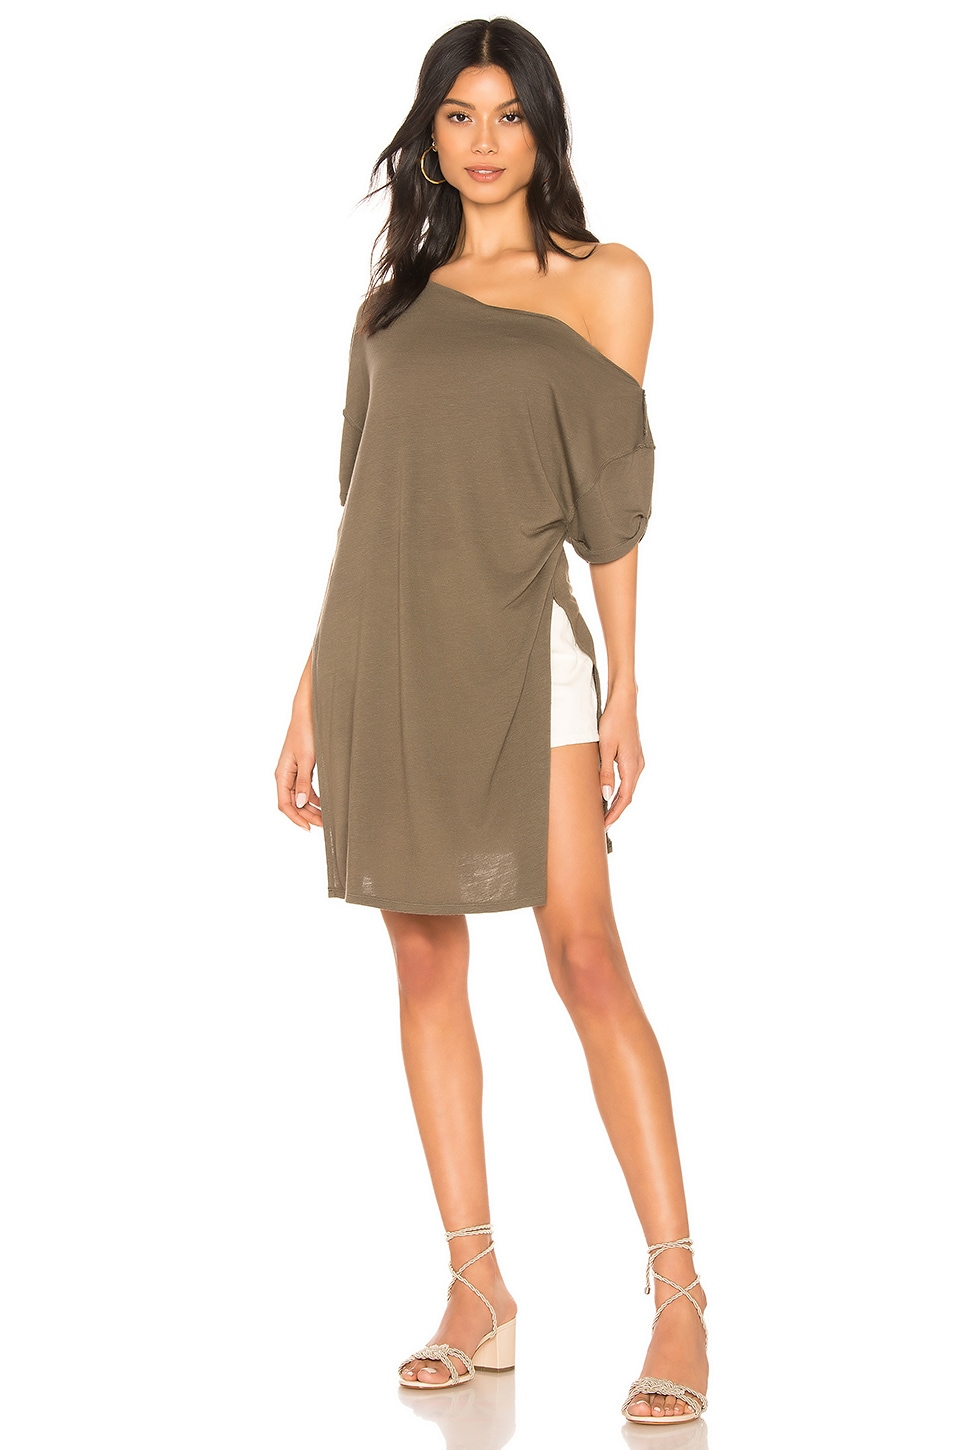 Free People Take It Easy Tee in Army